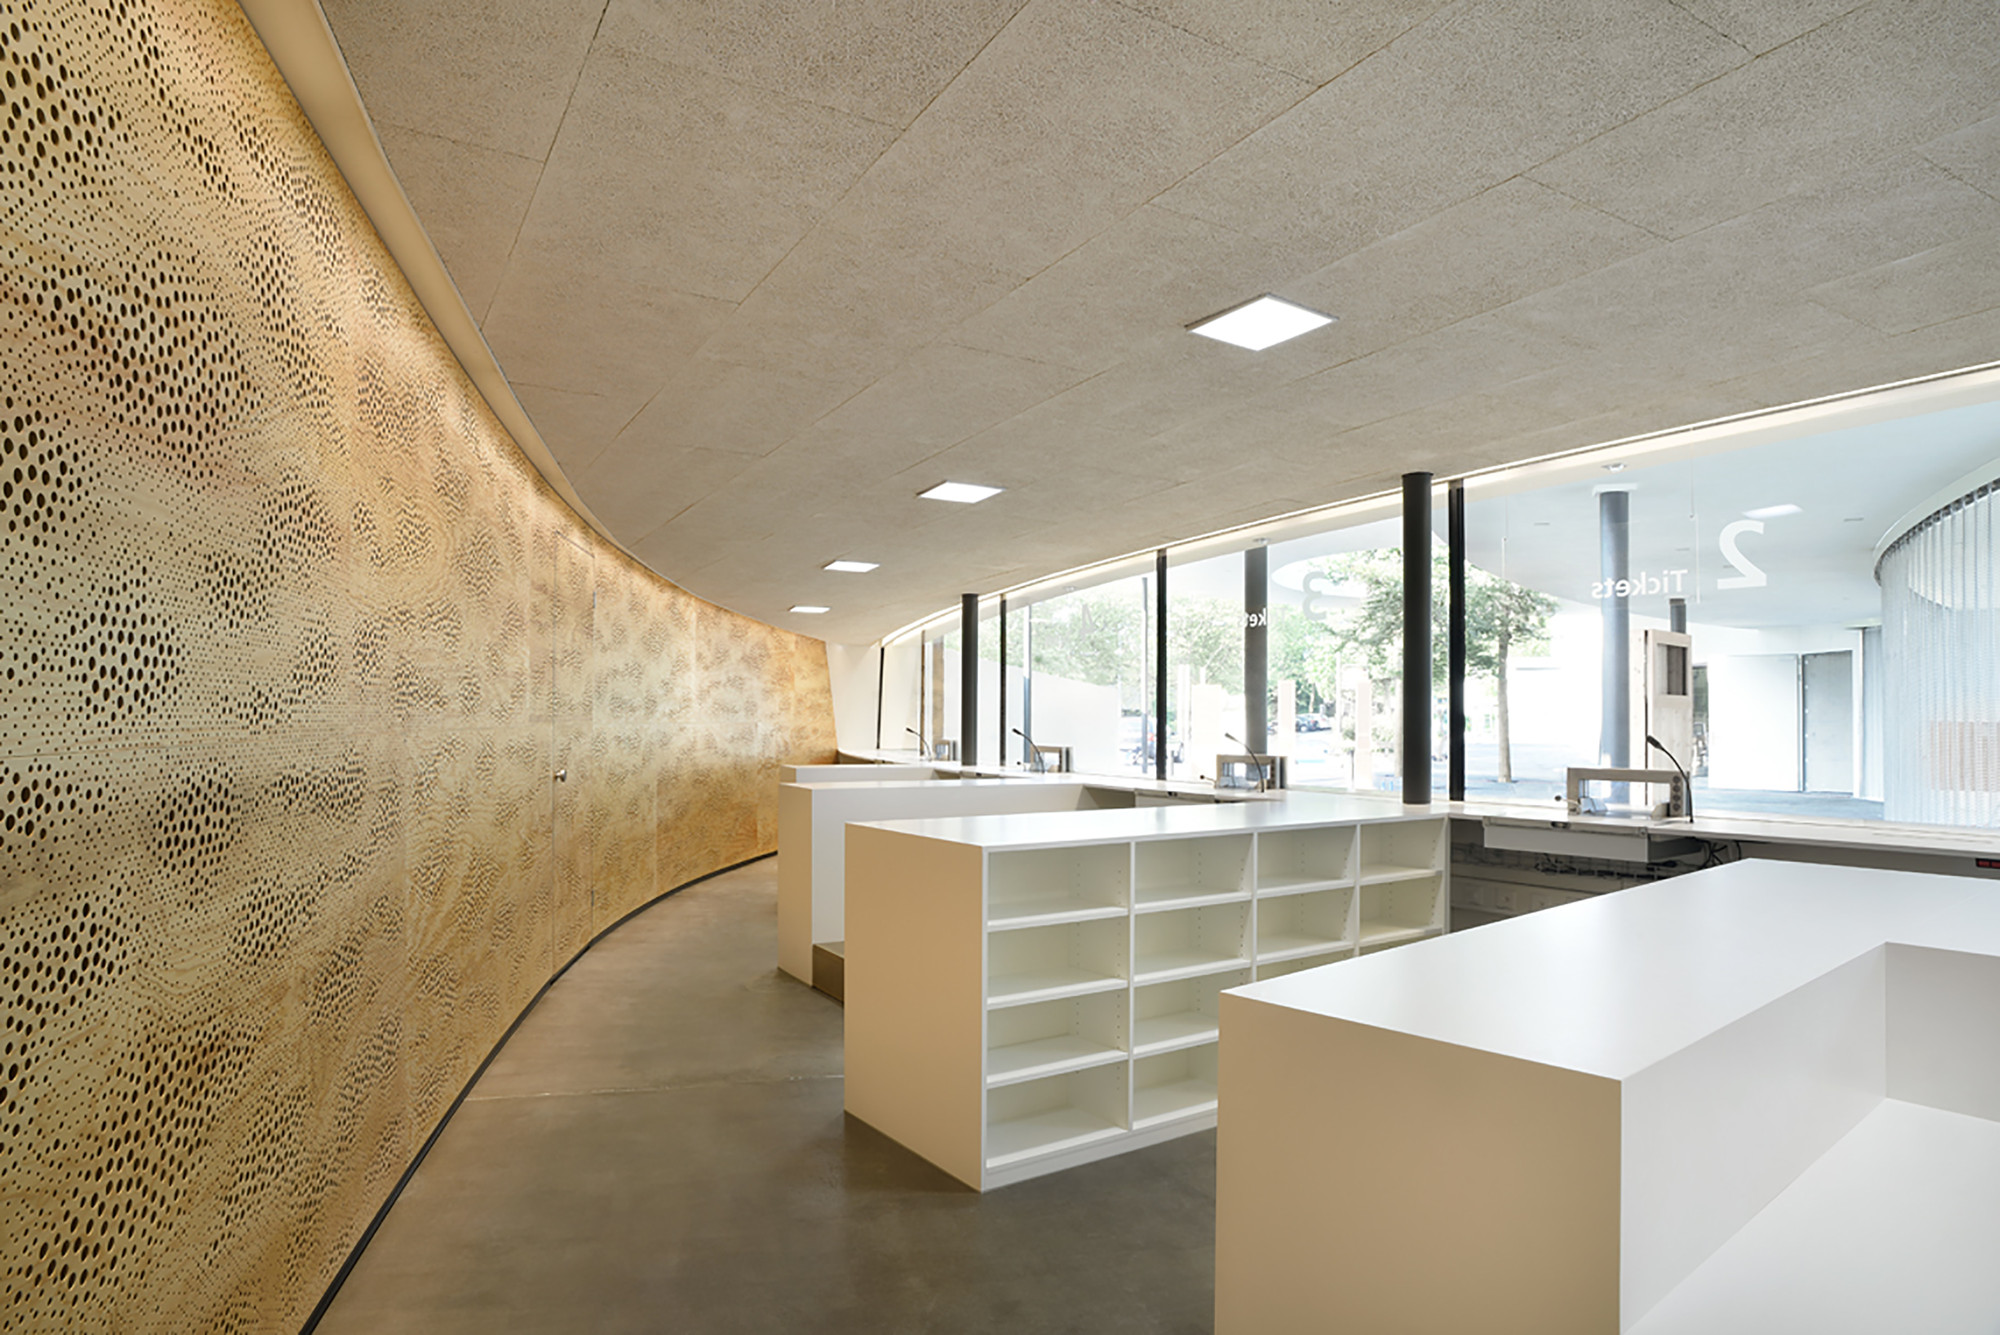 Foyer Architecture : Gallery of zurich zoo foyer renovation extension l p